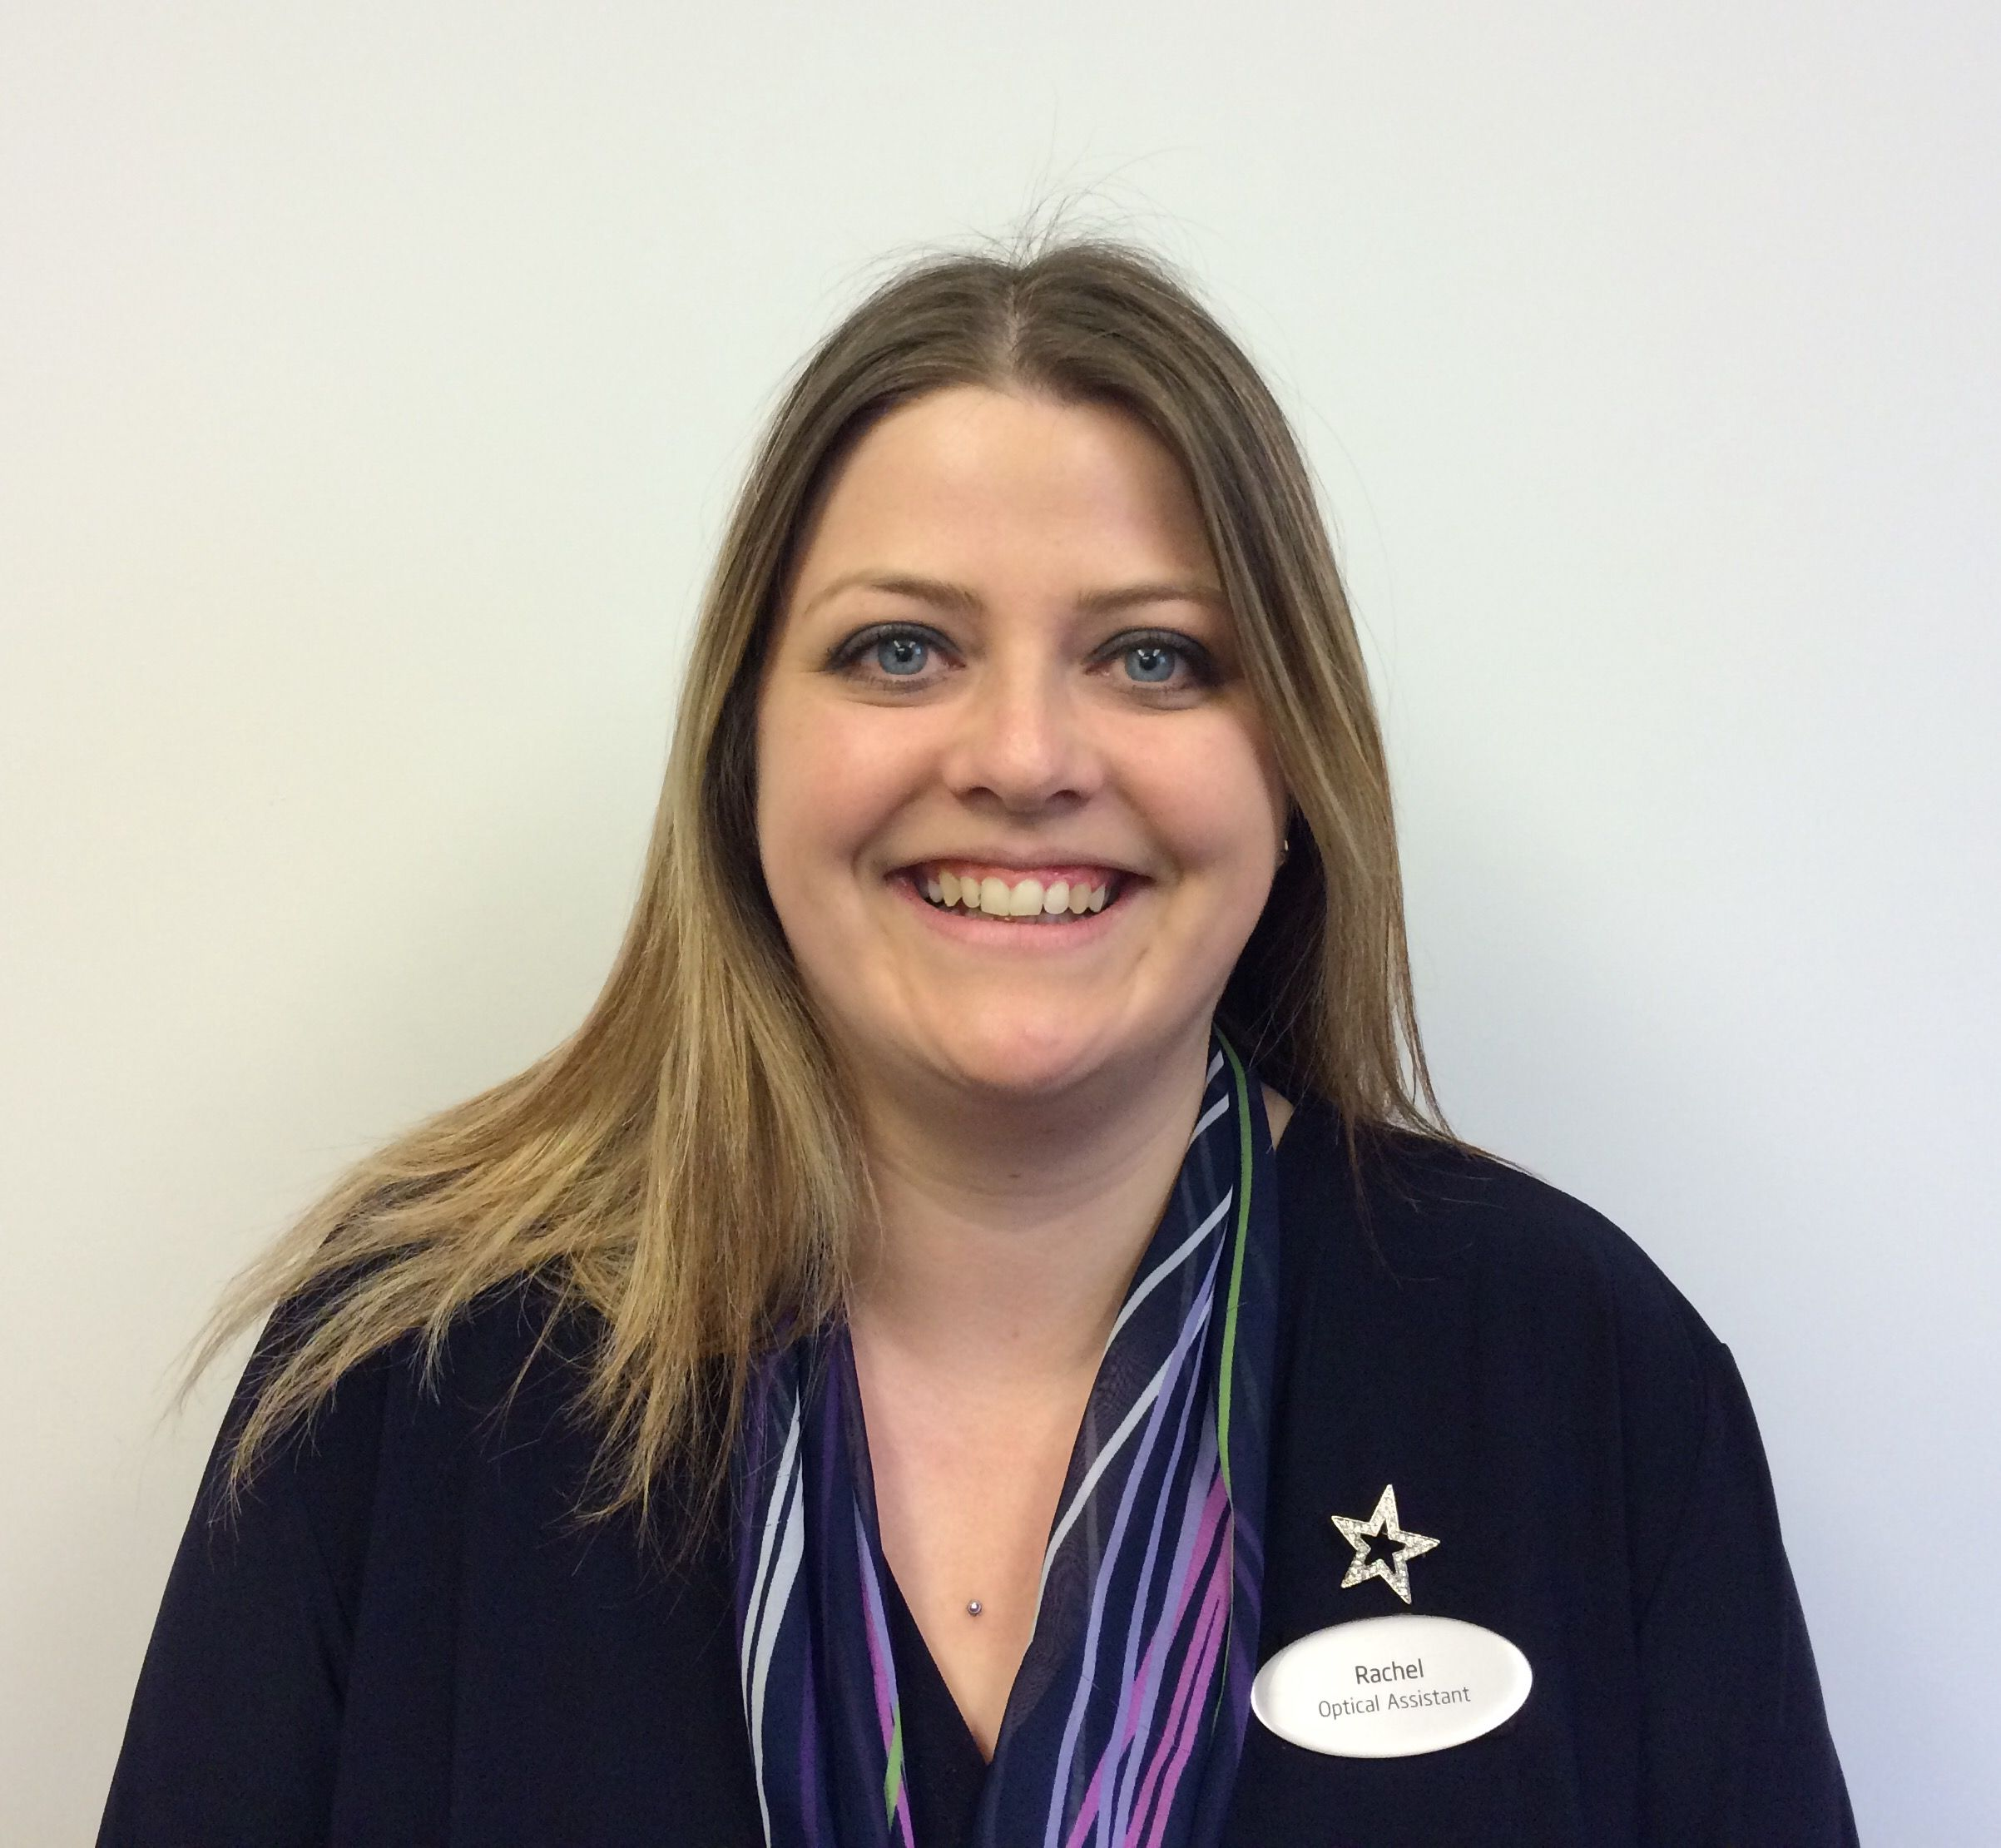 Rachel Colcombe, optical and contact lens assistant at Specsavers Worthing